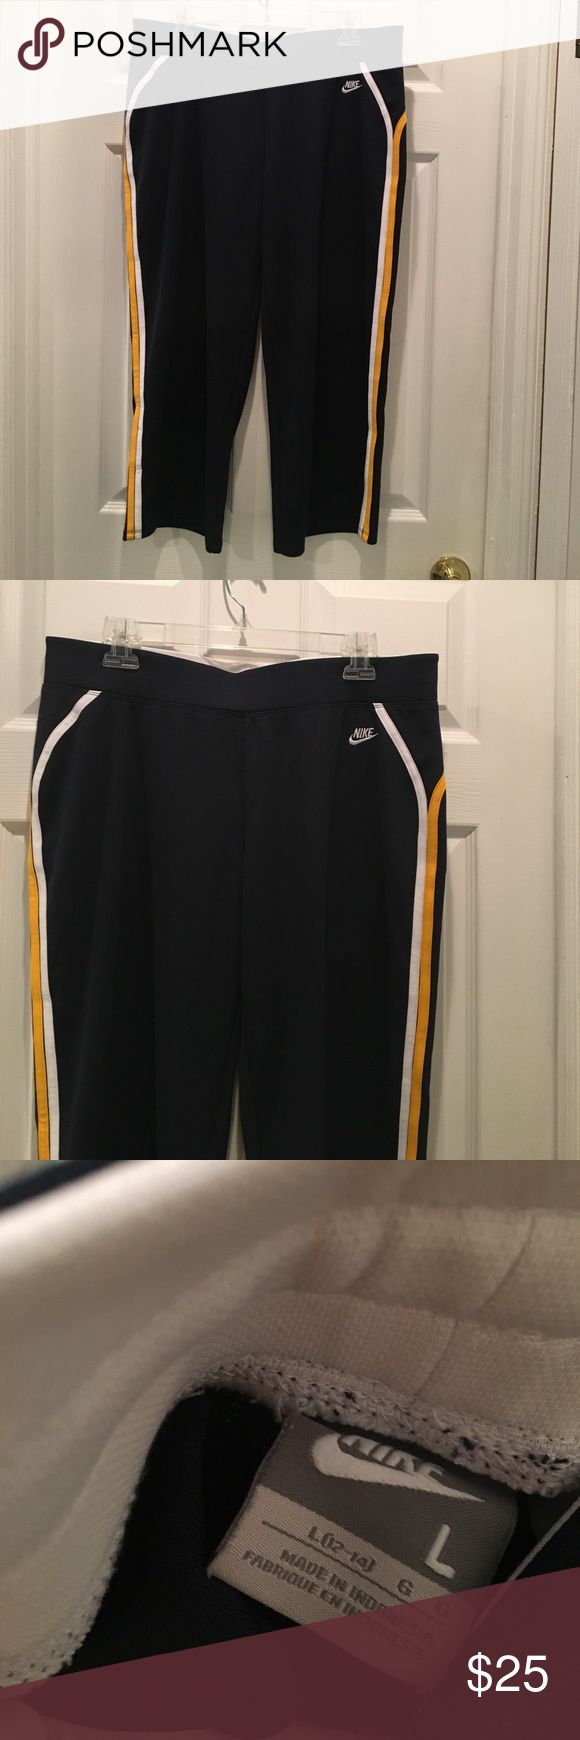 Navy Nike Capris Size L Drawstring inside - new without tags Nike Pants Capris